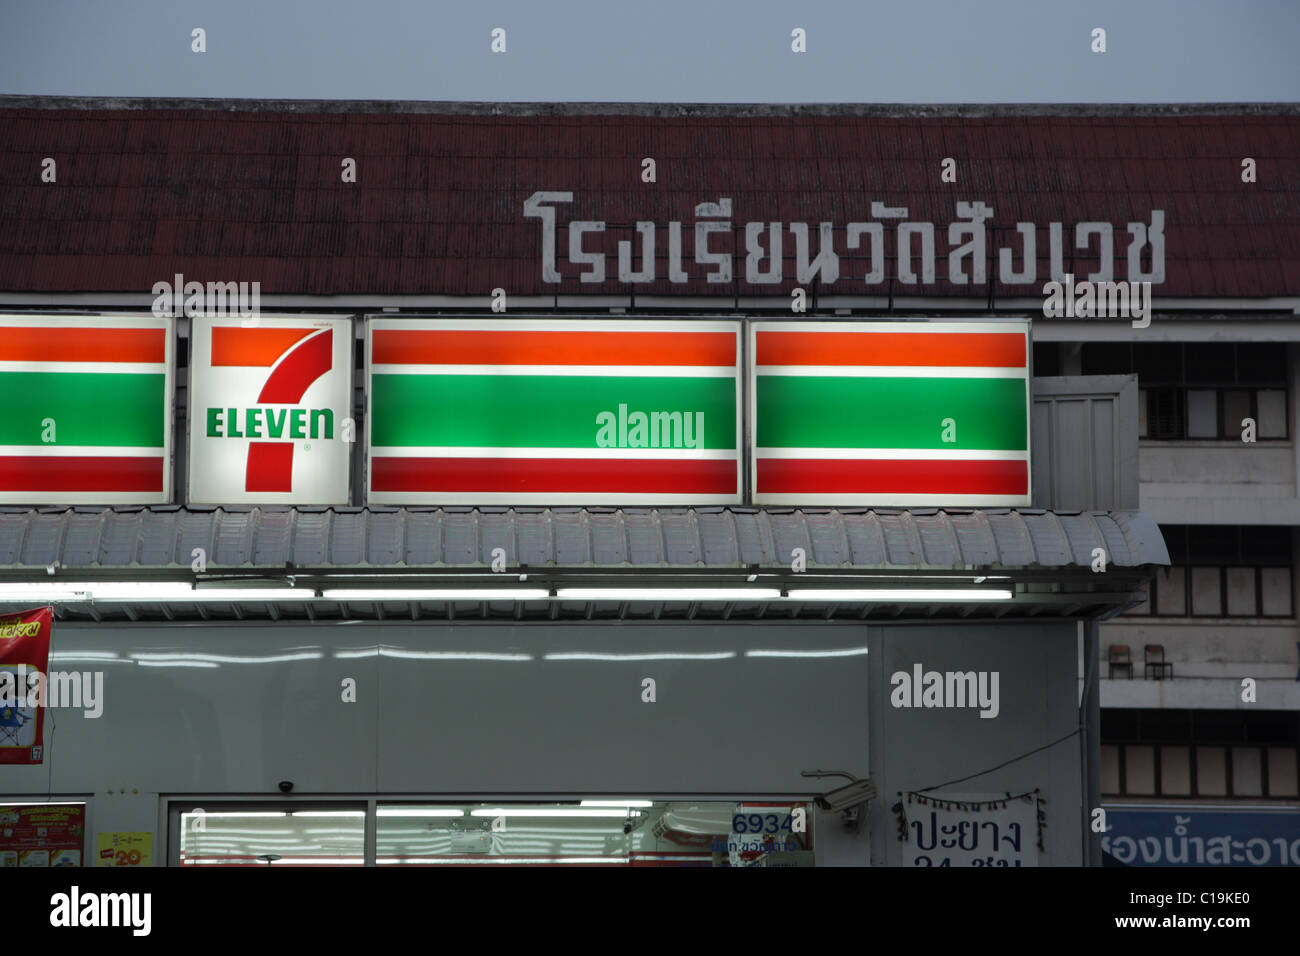 7 Eleven 24 hours store in Bangkok Stock Photo, Royalty Free Image ...